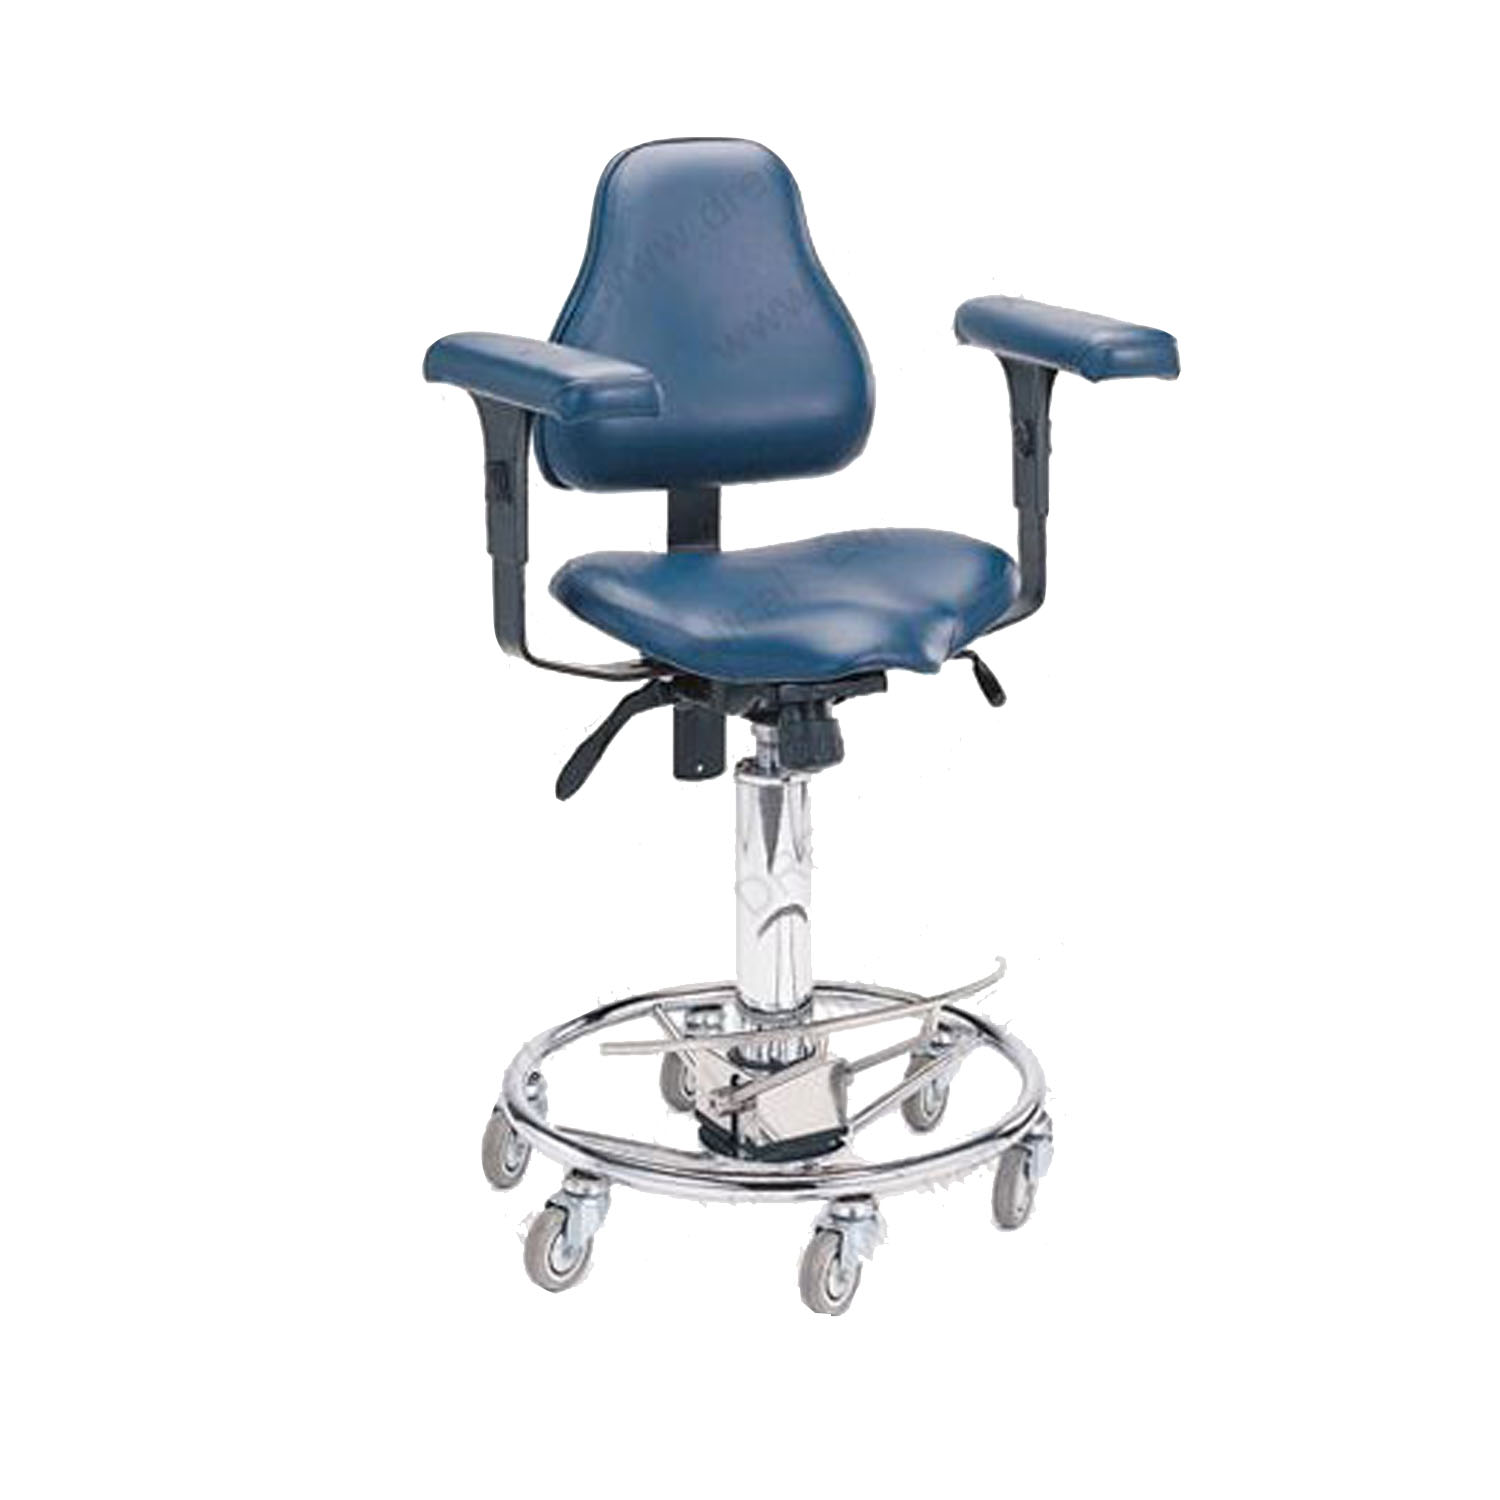 Pedigo Surgeon's Stools